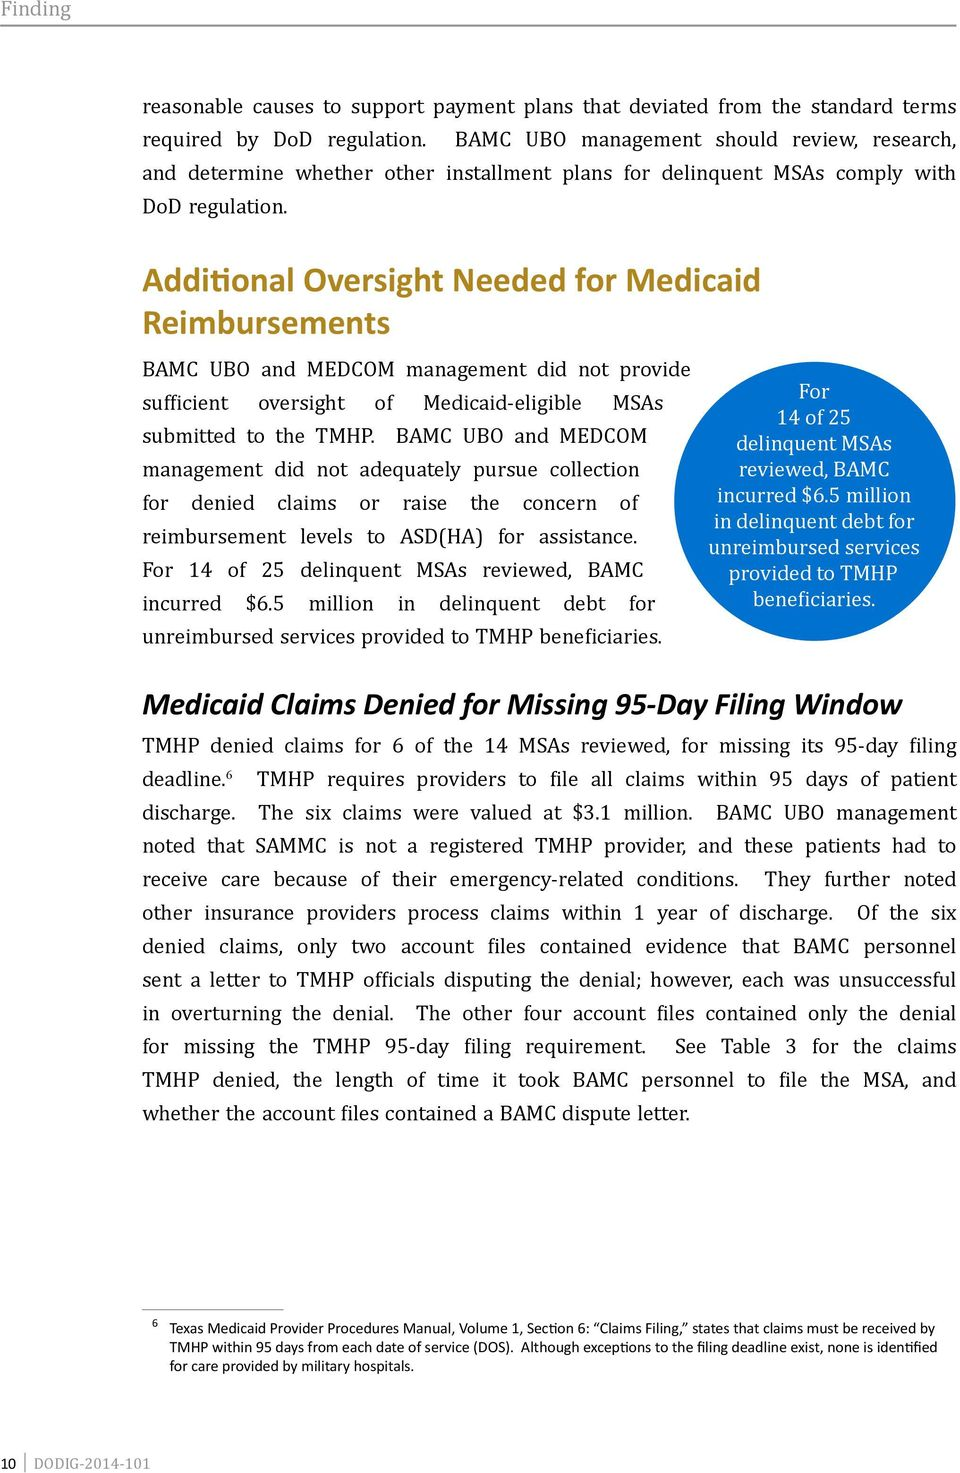 Additional Oversight Needed for Medicaid Reimbursements BAMC UBO and MEDCOM management did not provide sufficient oversight of Medicaid-eligible MSAs submitted to the TMHP.